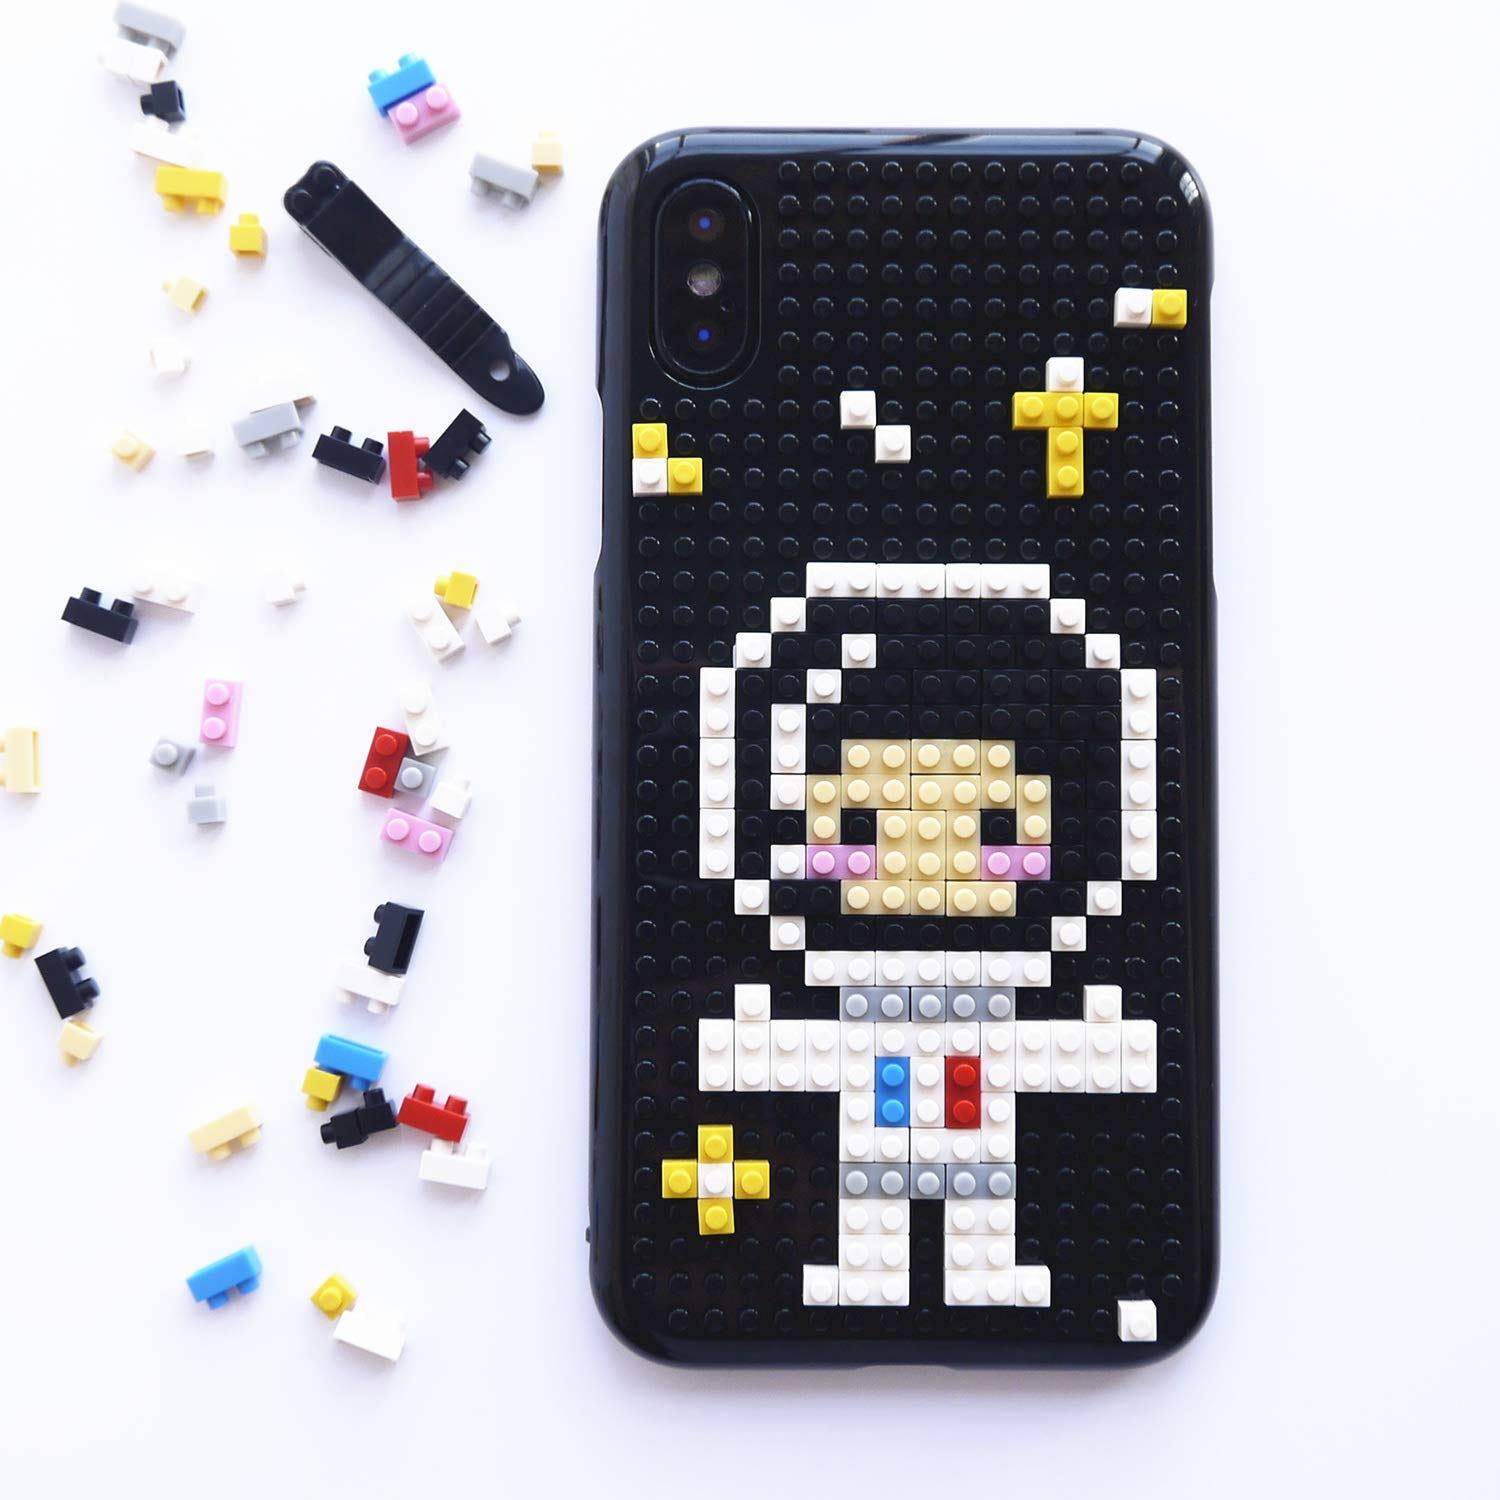 low priced 7dd1c 0e4f2 iPhone Xs Case, iPhone X Case, DMaos Cute Cartoon 3D DIY Mini Building  Blocks Toy Cover for Boys and Girls Creative Ability, Funny for iPhone  10s/10 ...